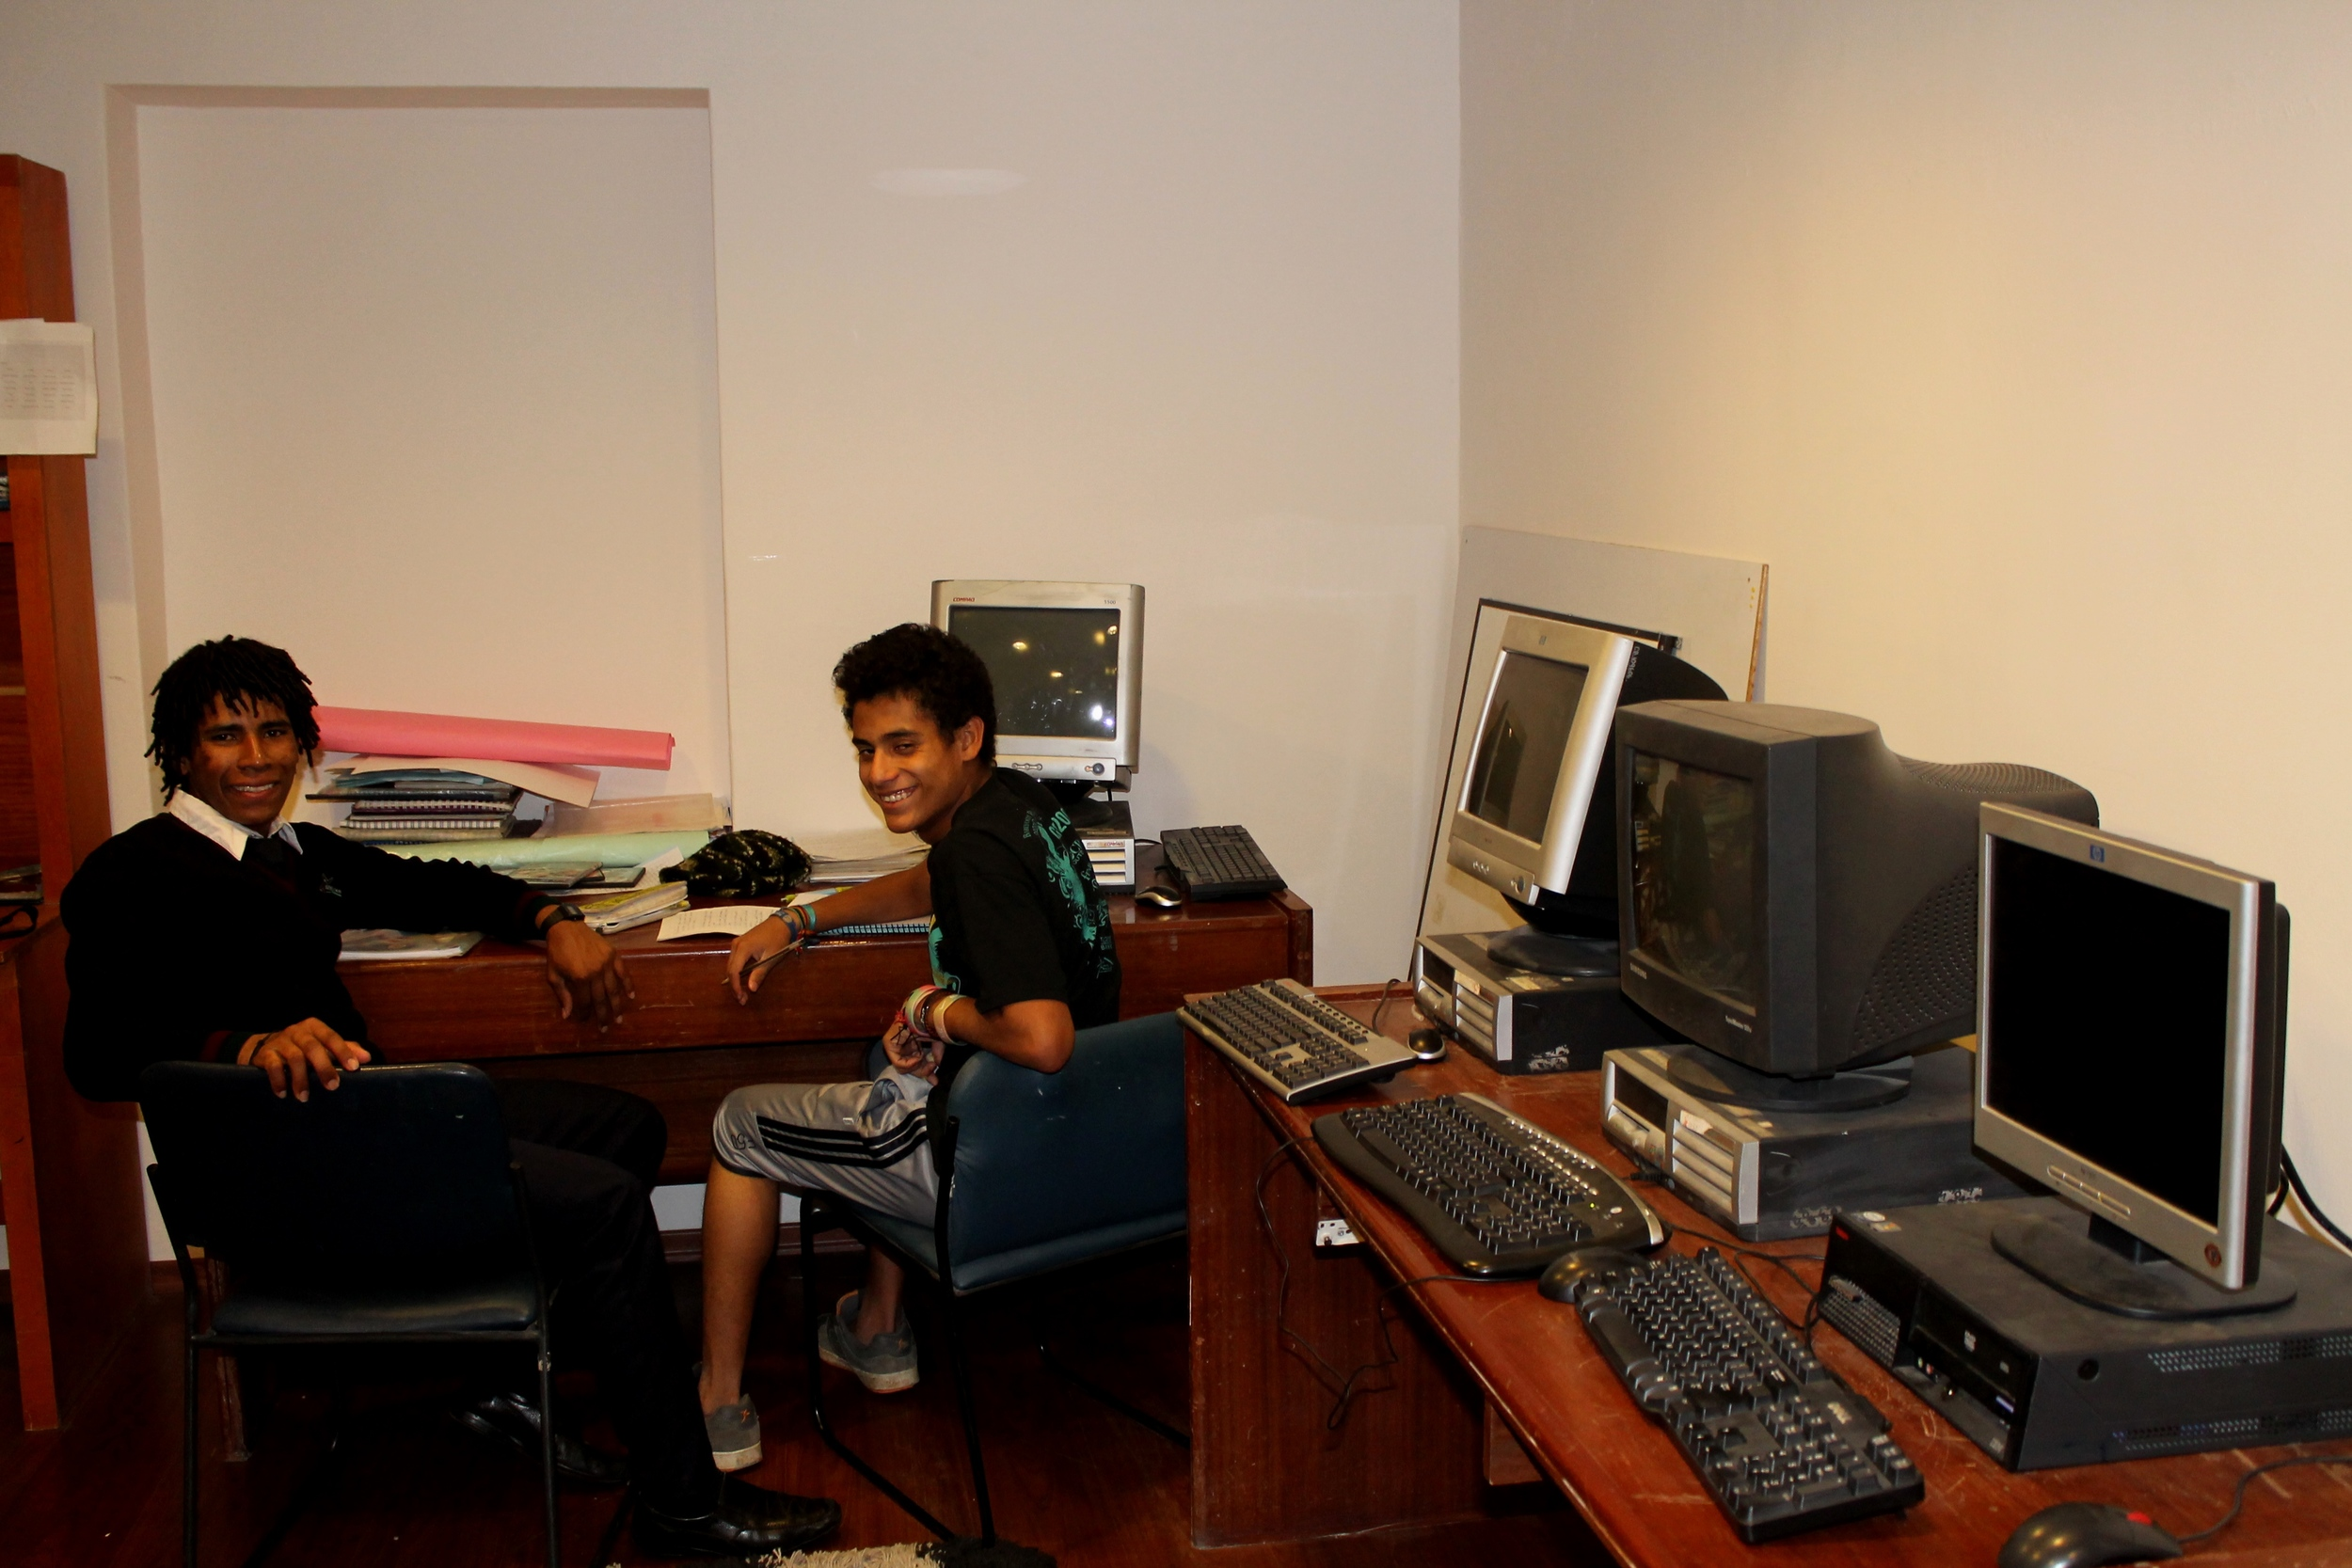 Doing homework in the Casa G computer lab